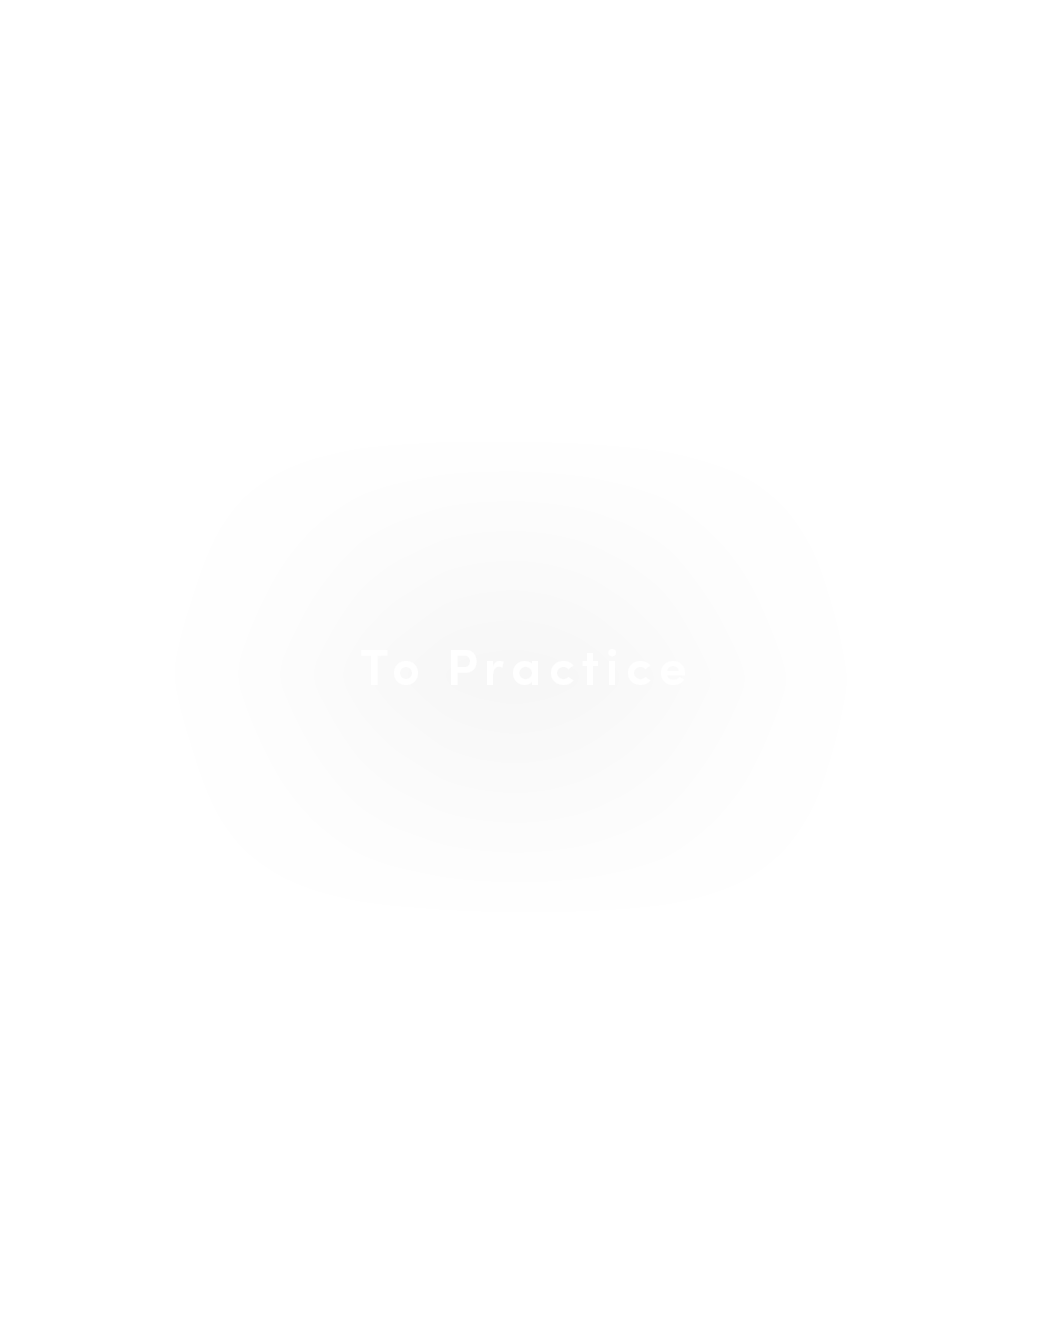 TO PRACTICE